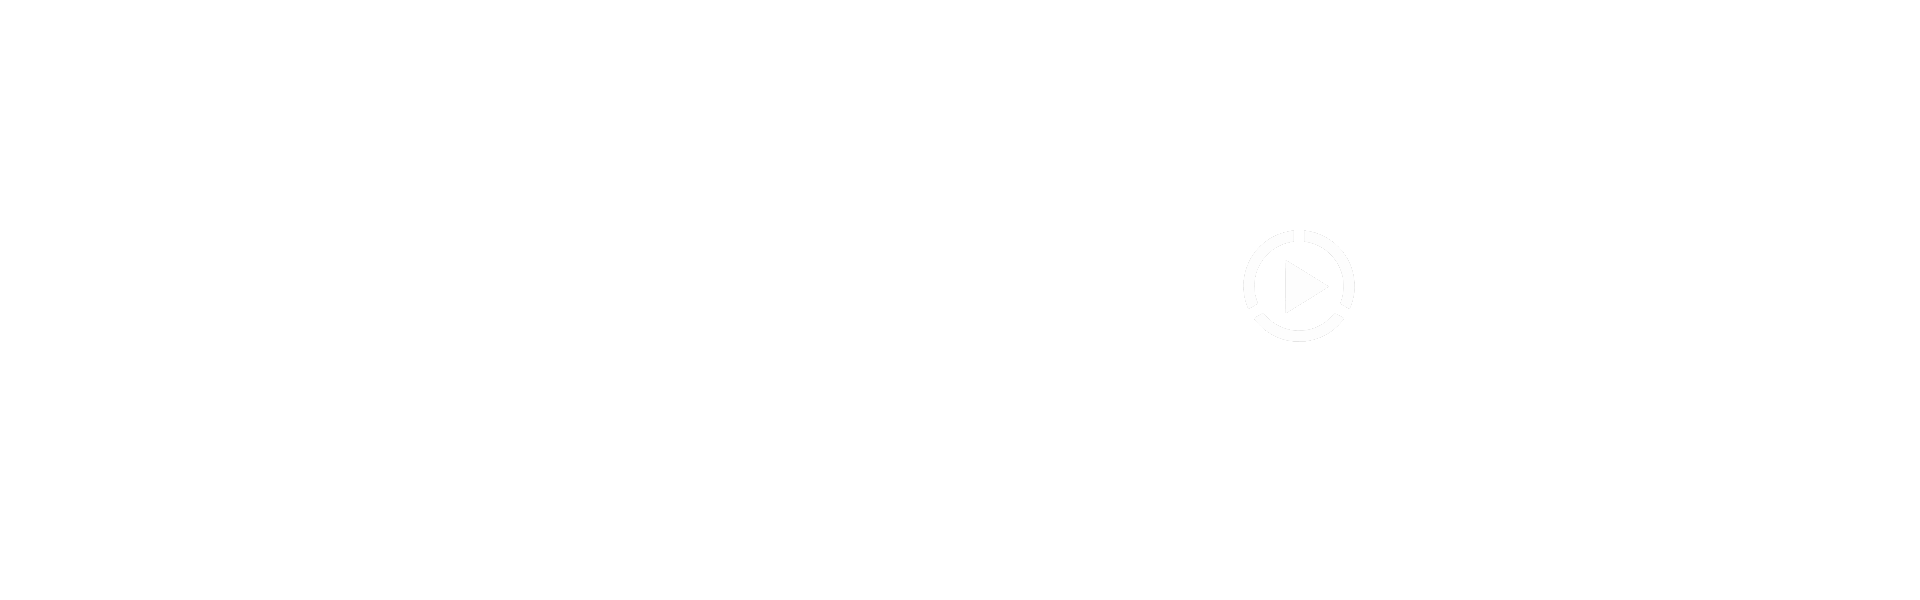 Leinolat Group - katso video